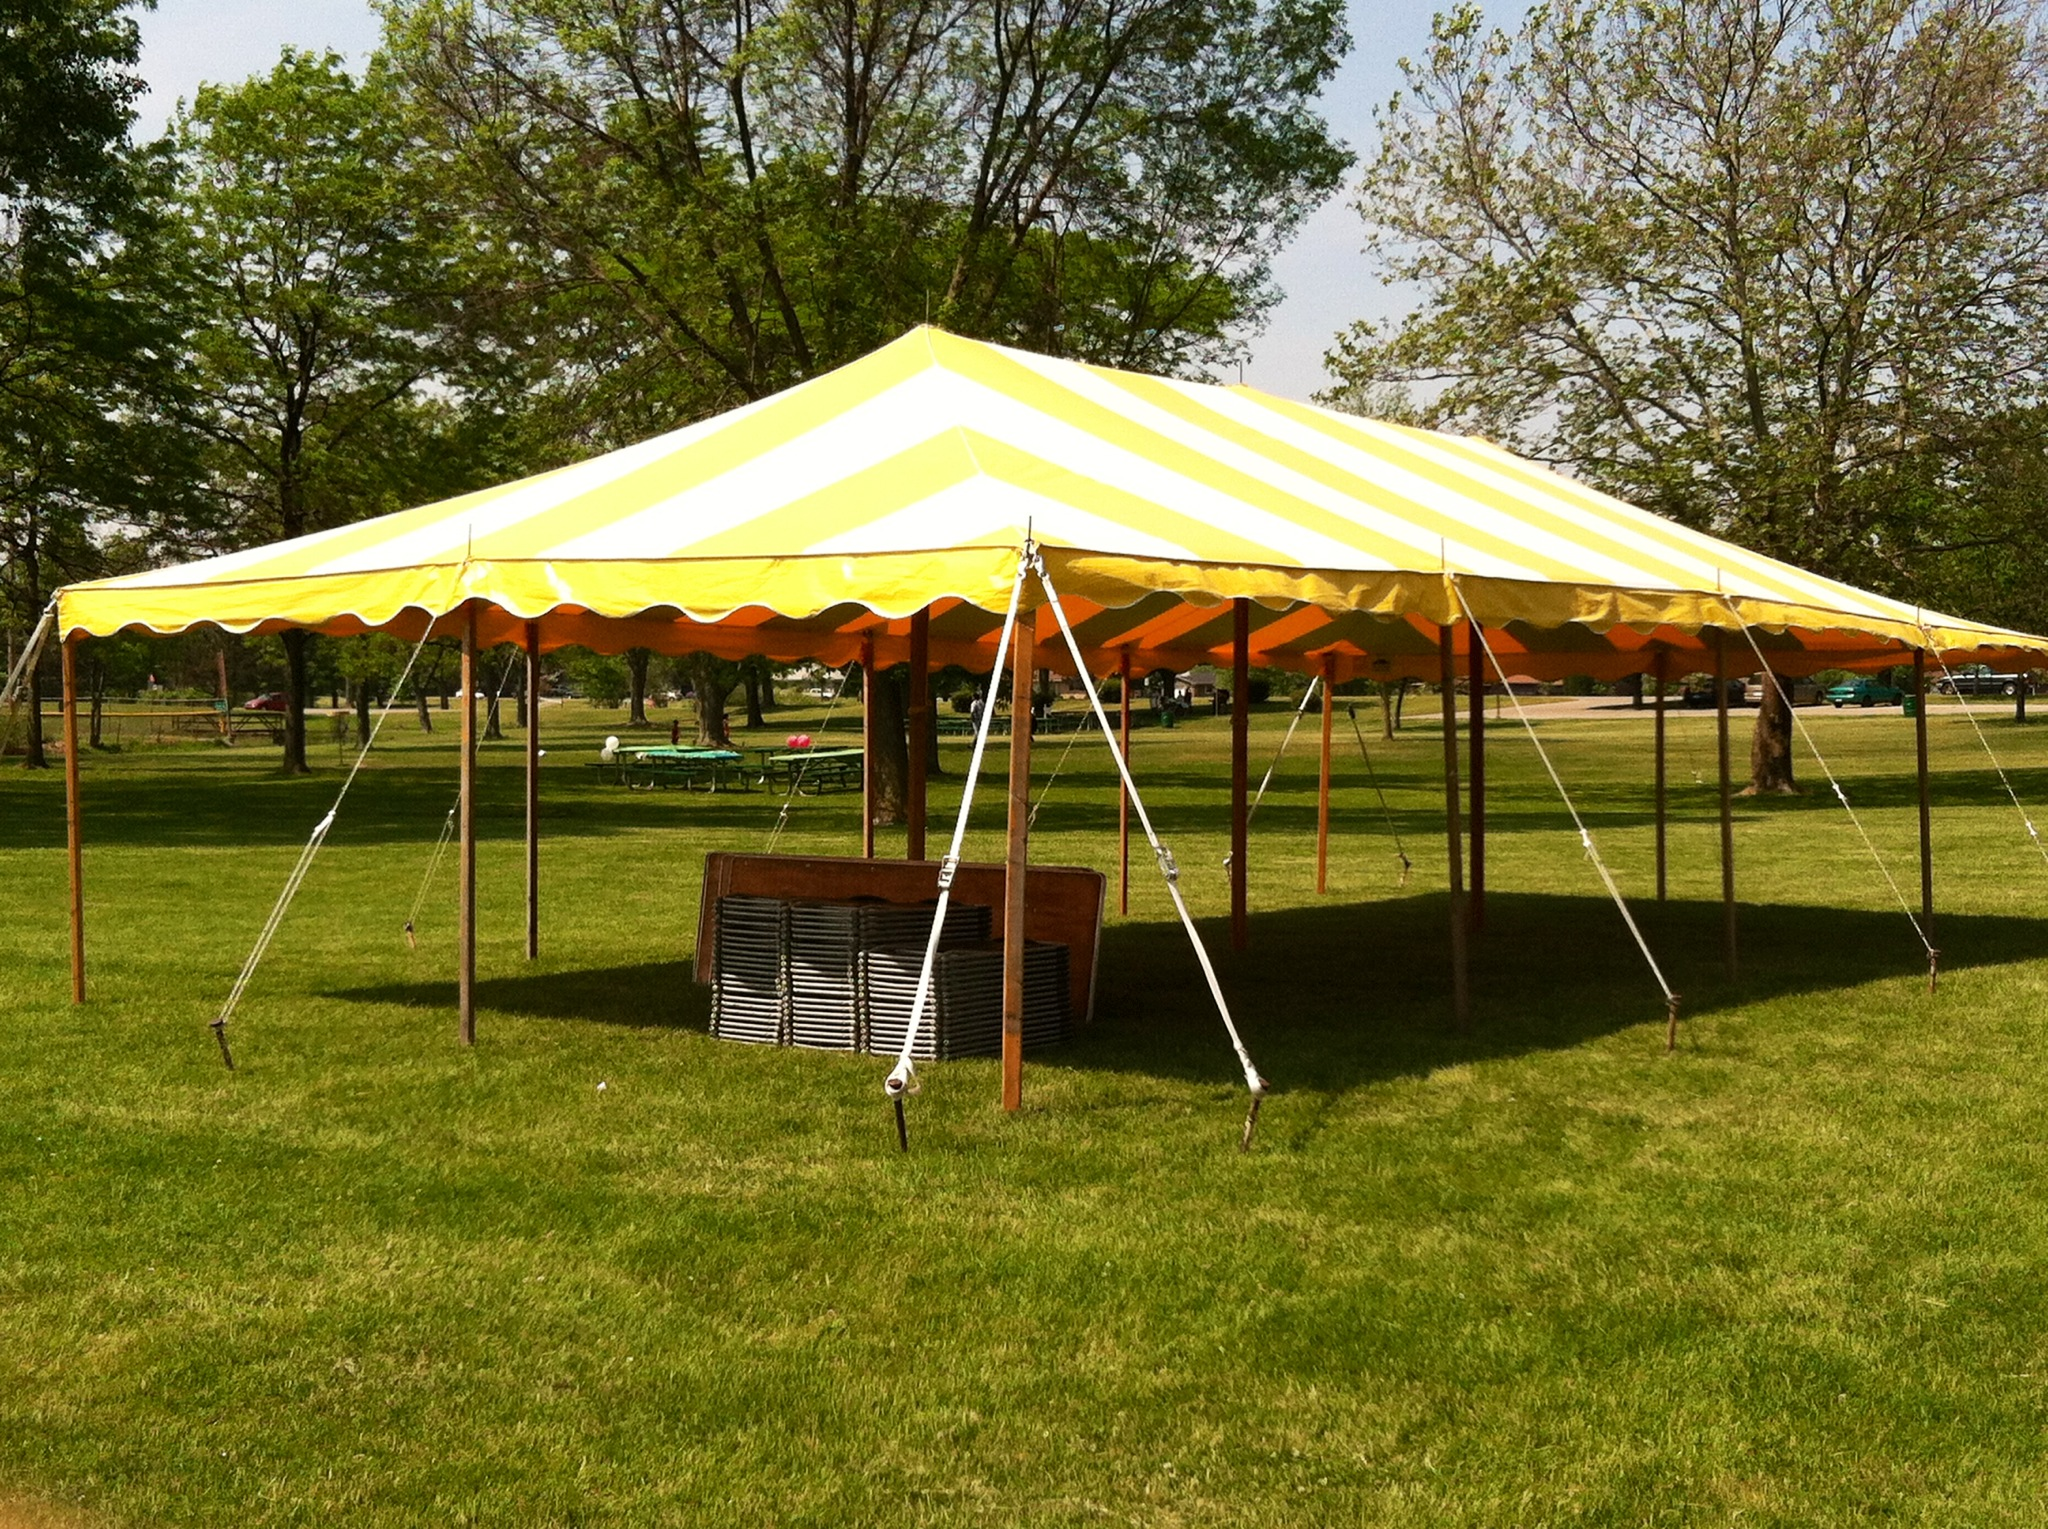 Regular Peak Striped Tension Tents & Regular Peak Striped Tension Tents | Grand Rapids Tent Rentals